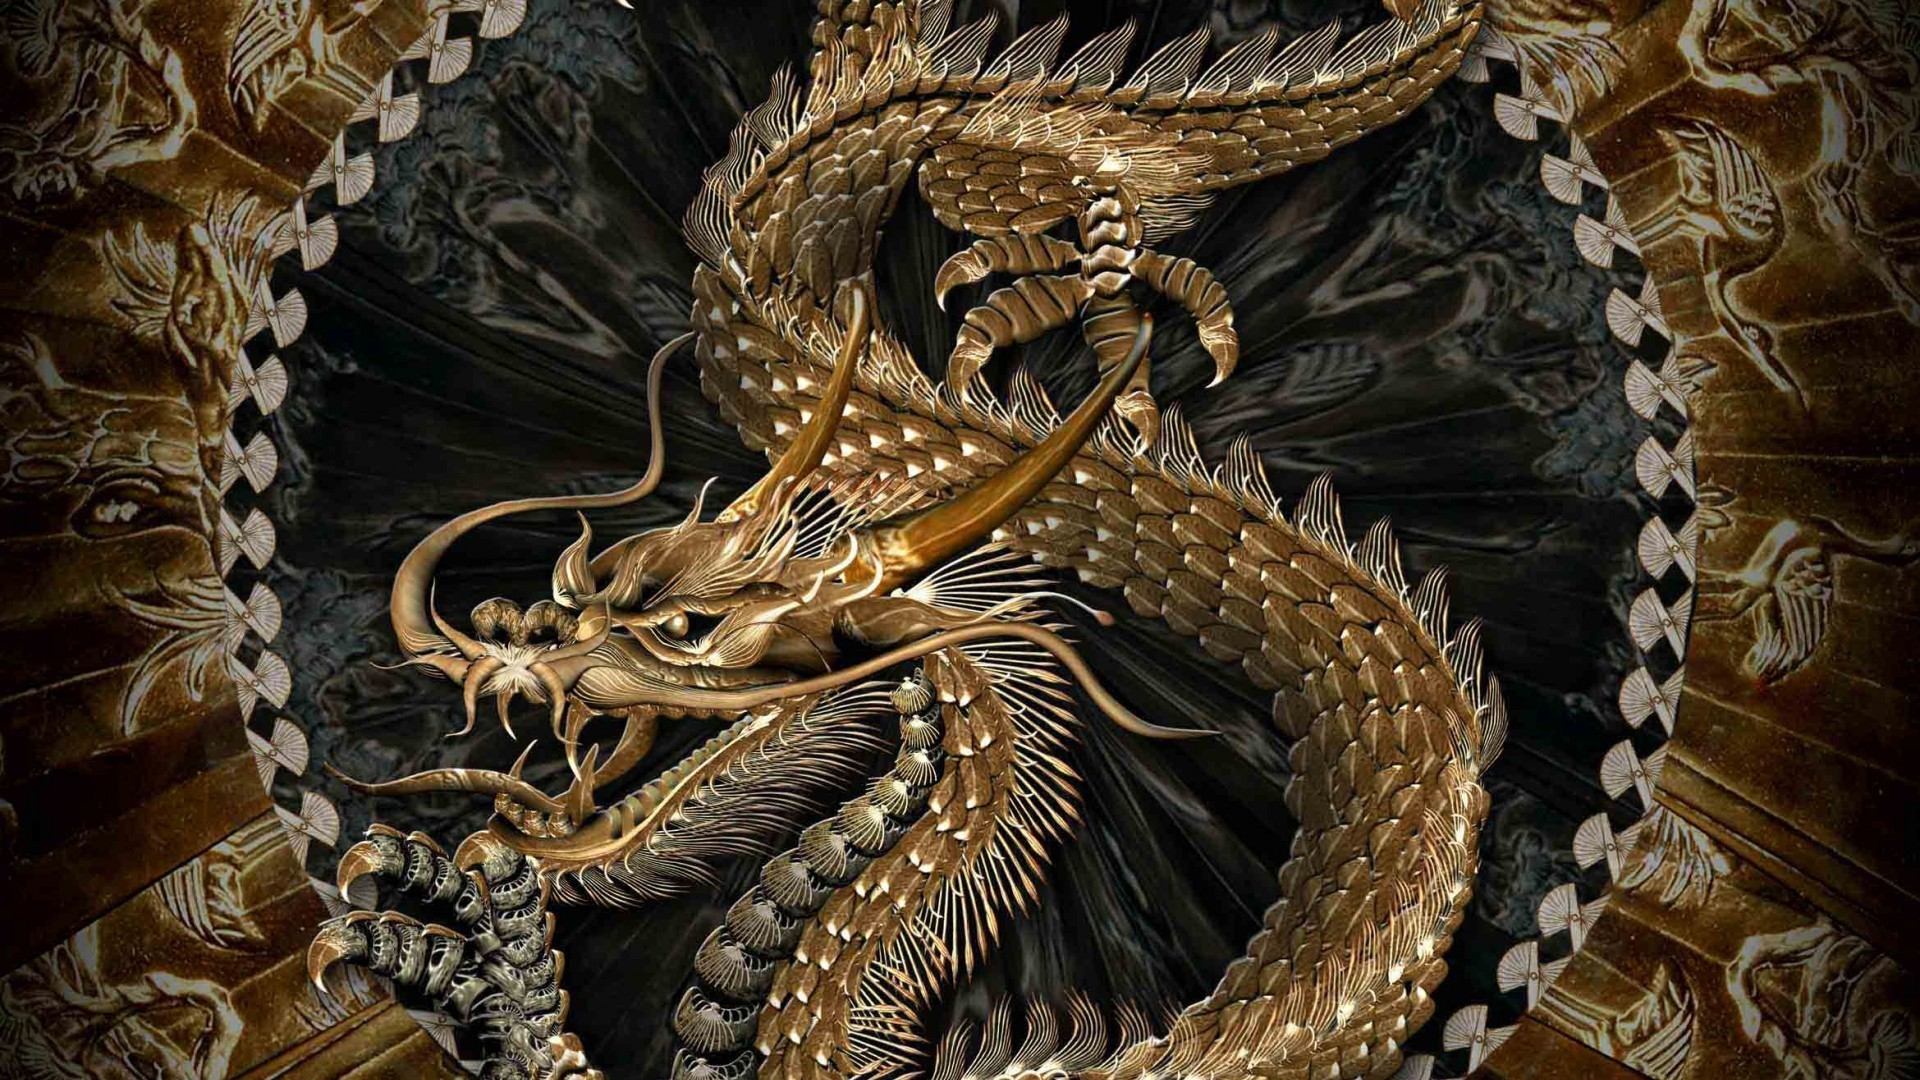 Res: 1920x1080, Chinese Dragon wallpaper 214880